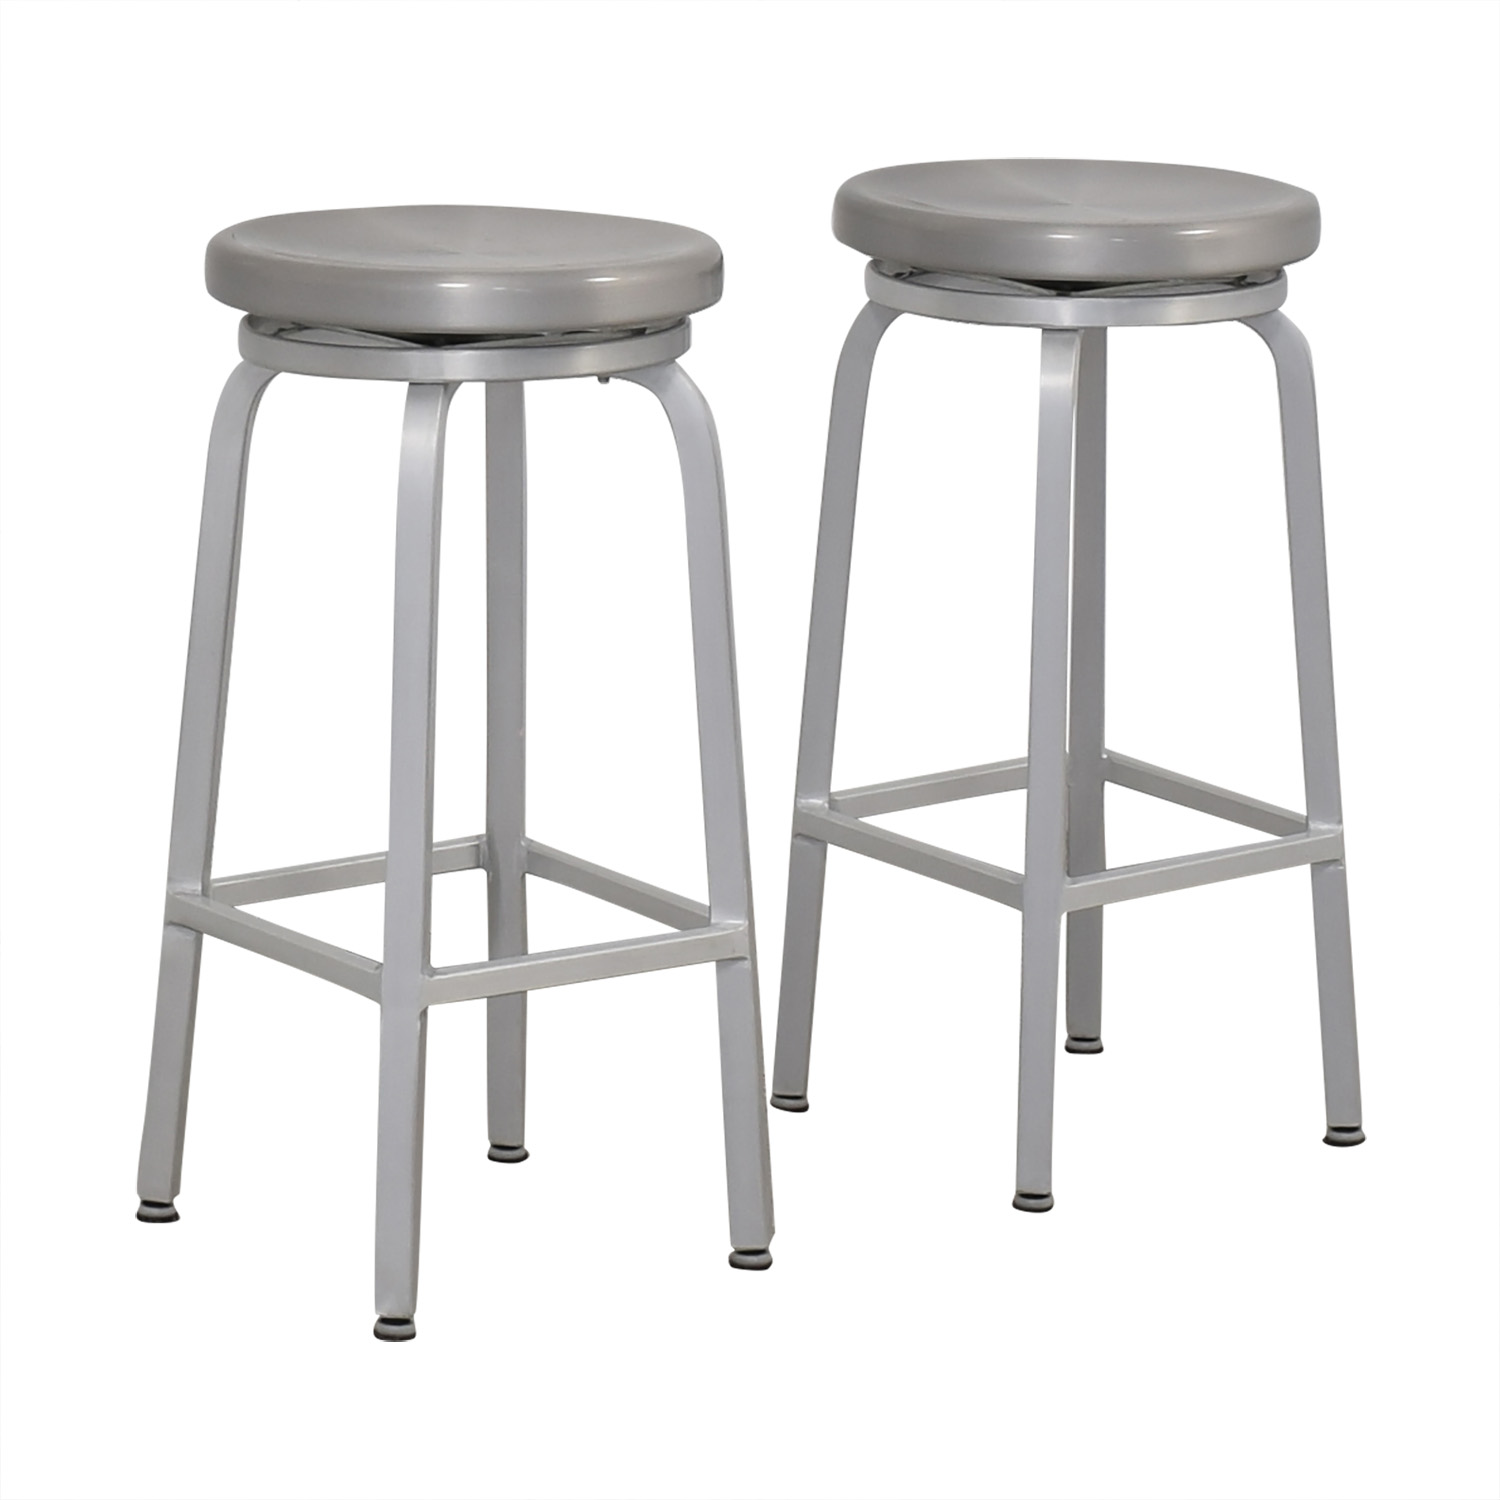 buy Crate & Barrel Stainless Steel Stools Crate & Barrel Chairs